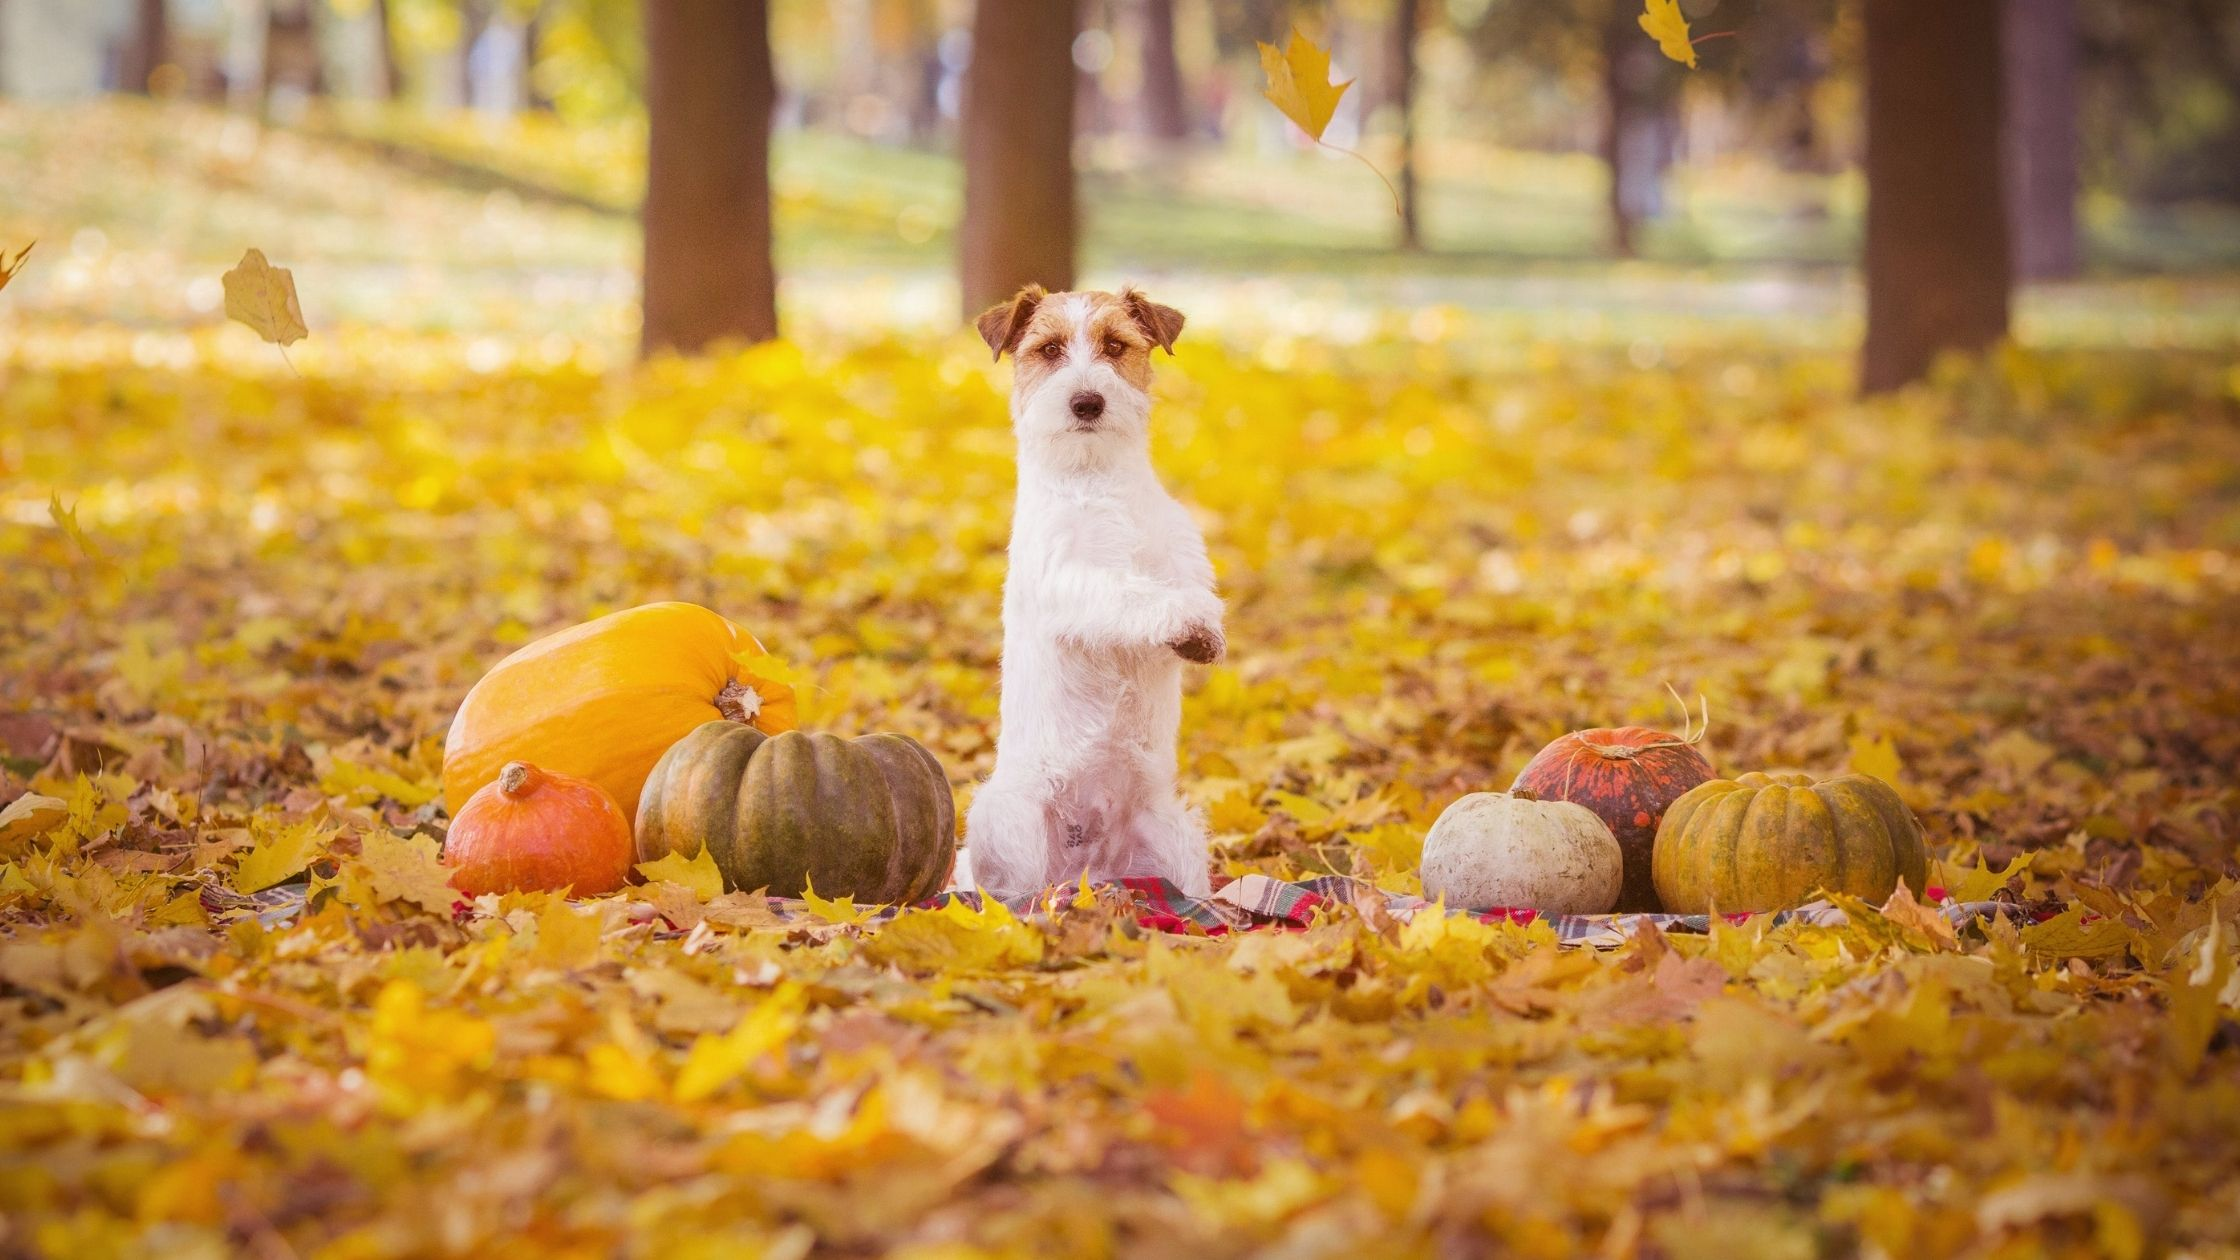 As you plan your seasonal activities, don't forget to include Fido! Read on for 11 fun fall activities you can enjoy with your dog.